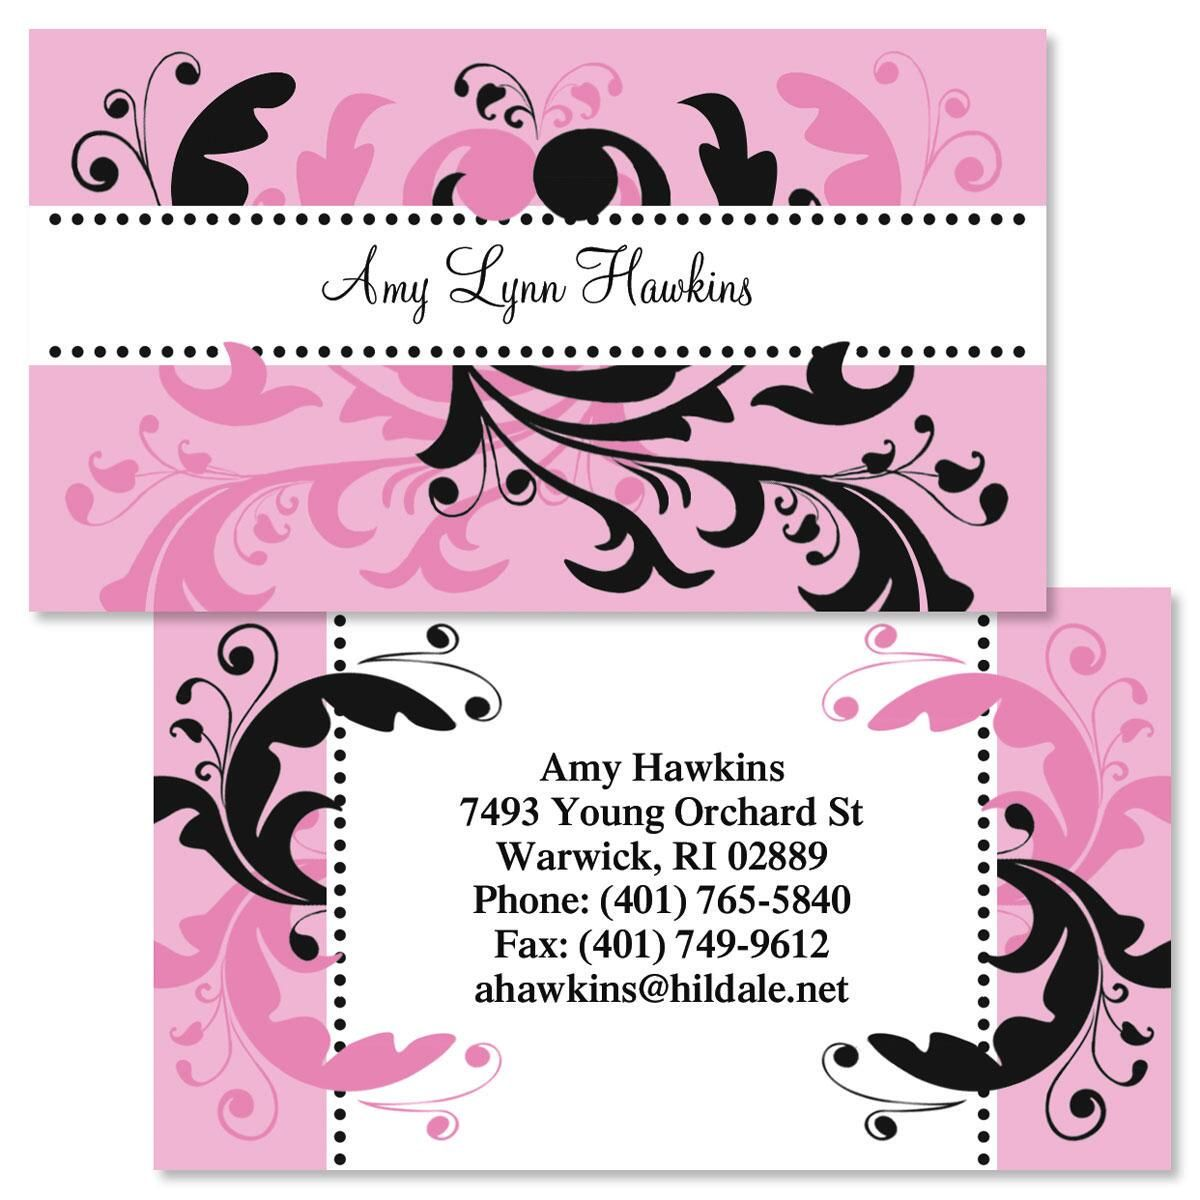 P&K Swirl Two-Sided Calling Card